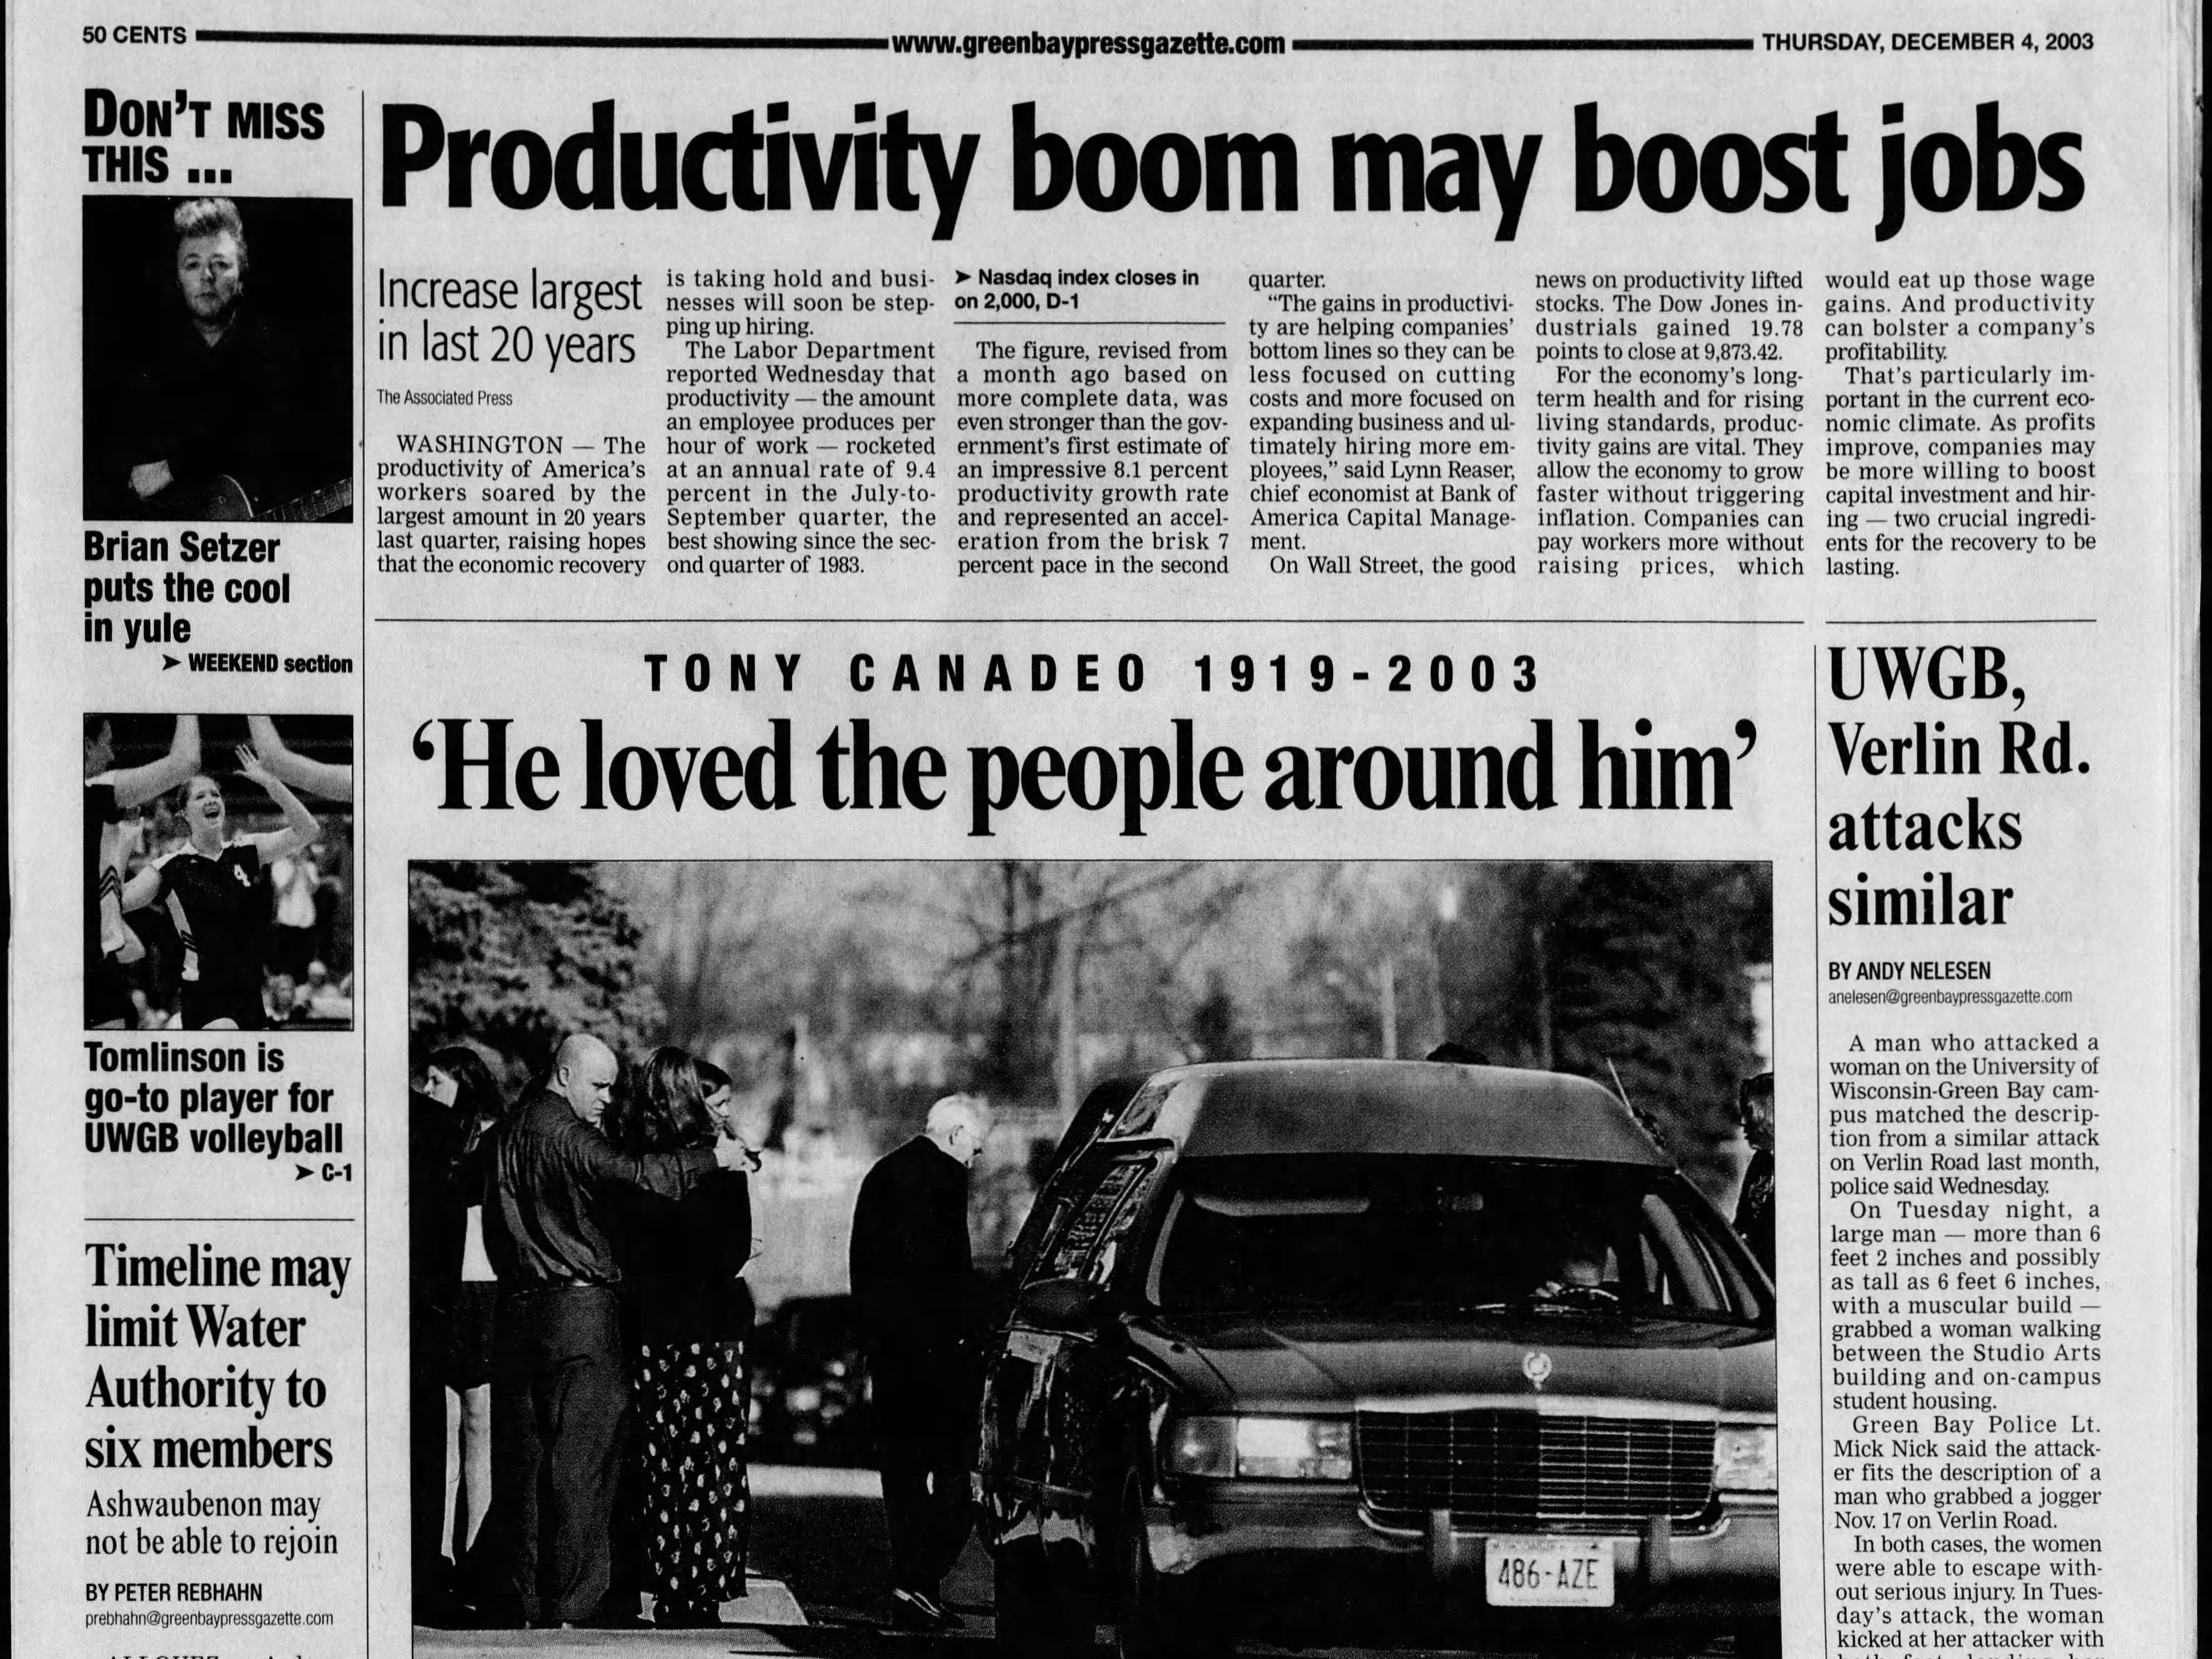 Today in History: Dec. 4, 2003